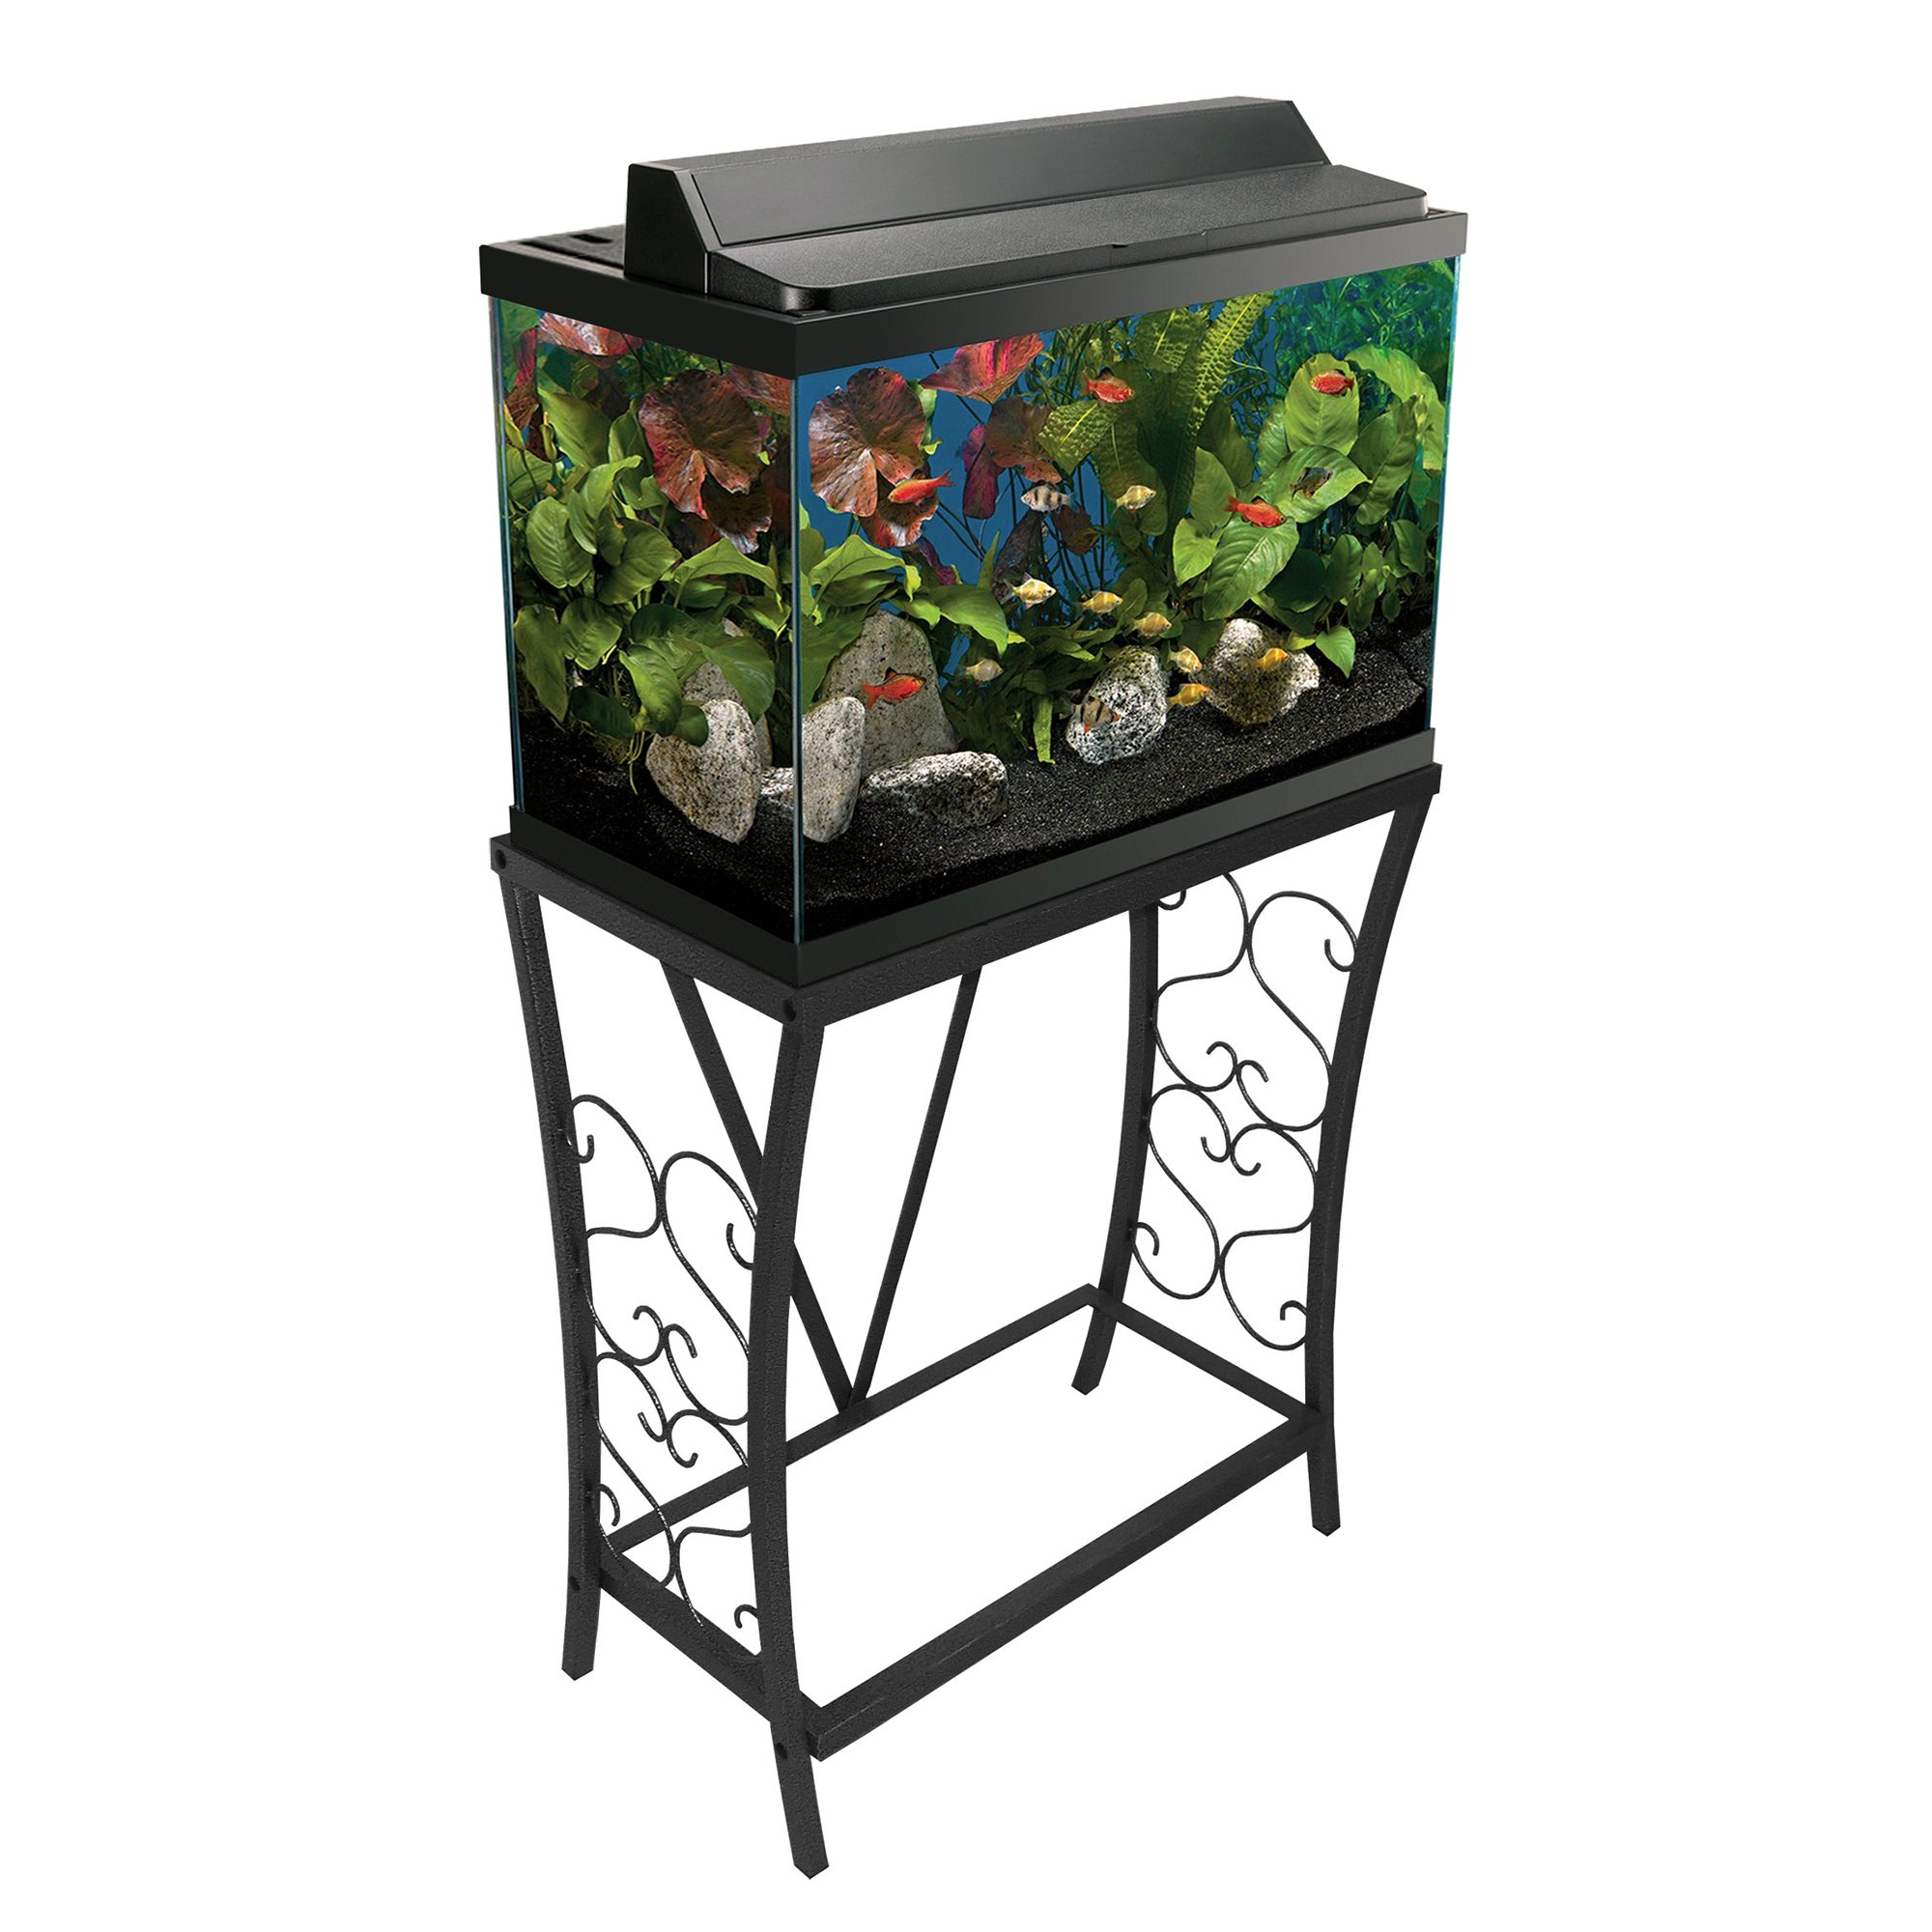 Aquatic Fundamentals Black Scroll Aquarium Stand, 20 Gallons